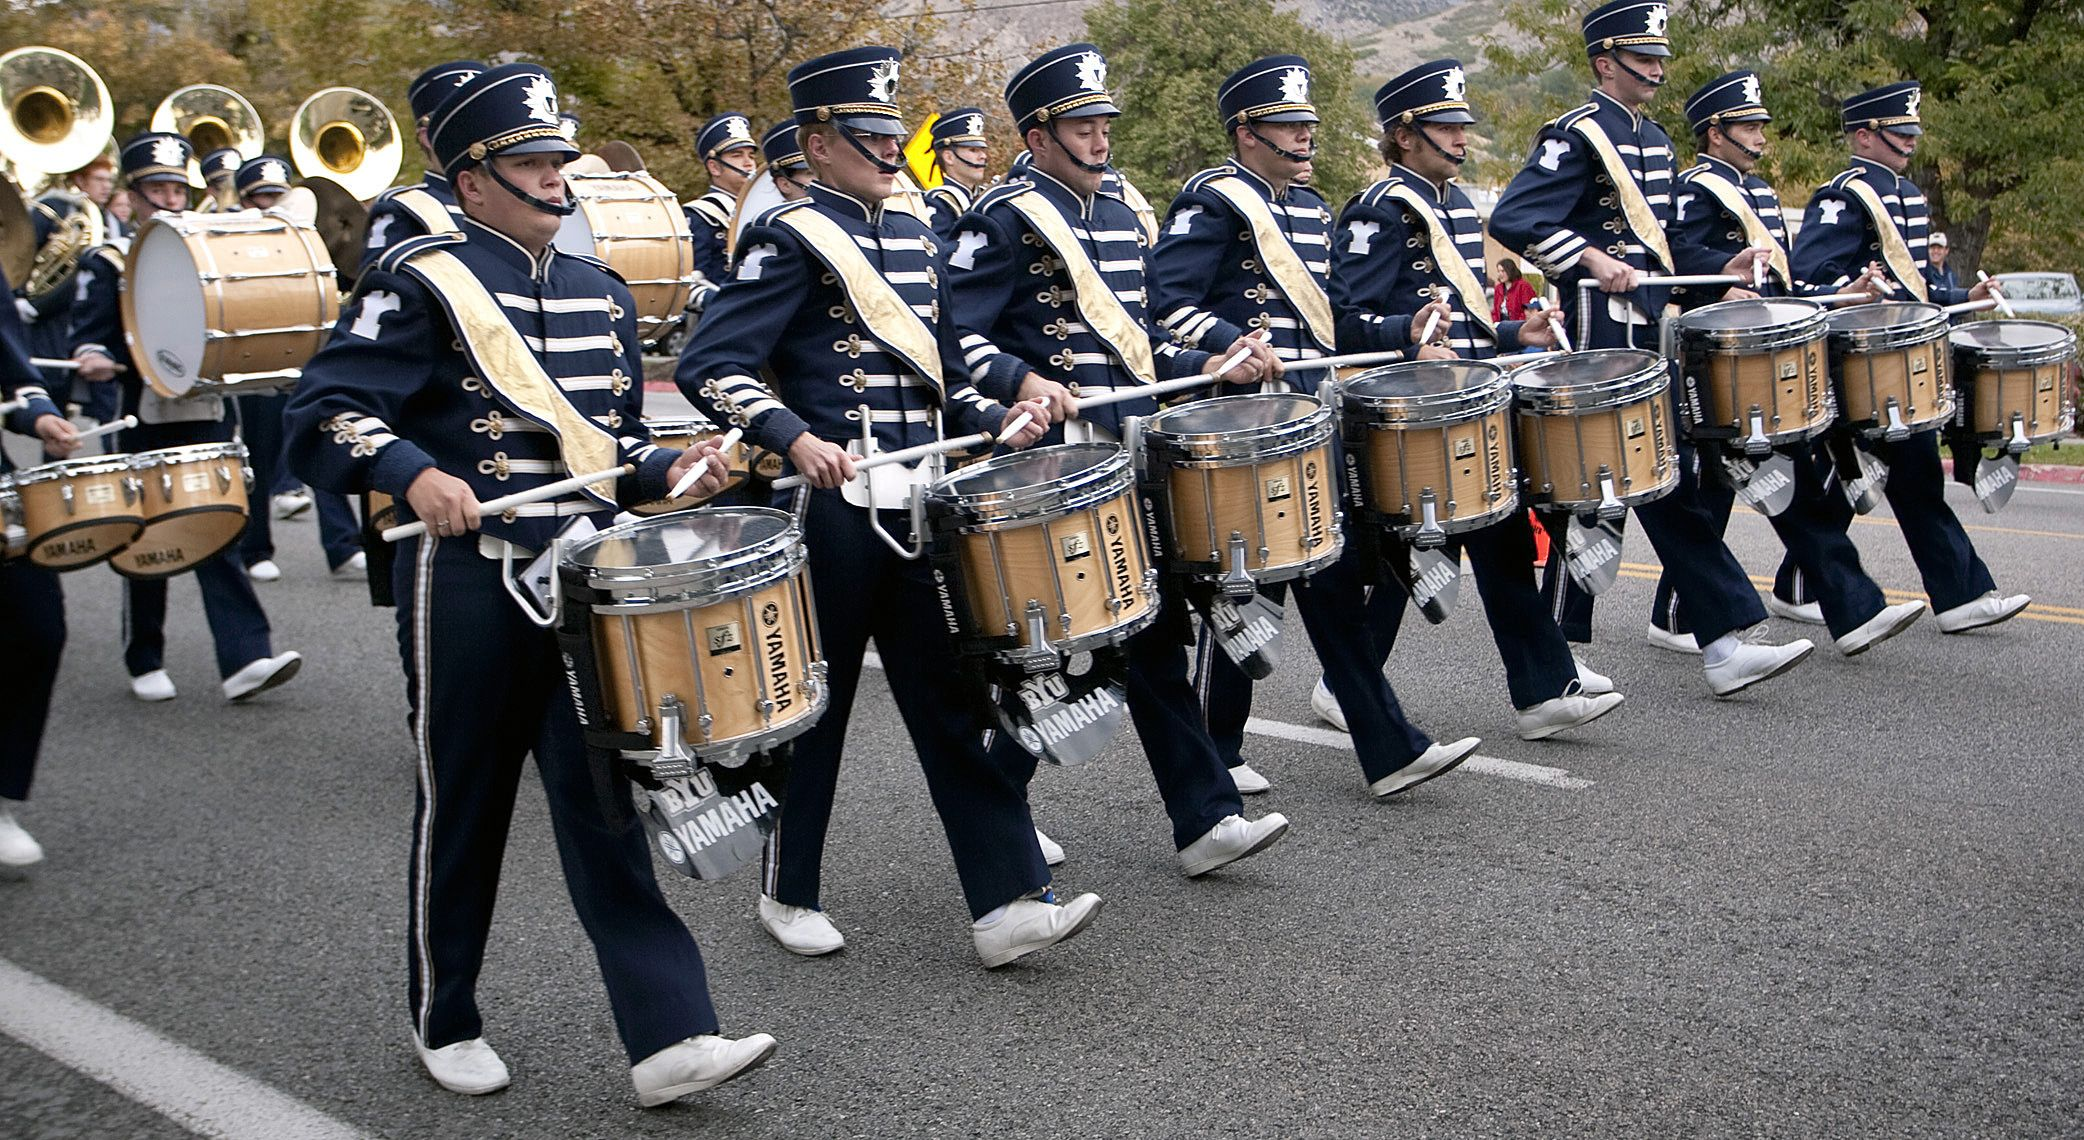 17 Best images about marching band on Pinterest | Geek culture ...